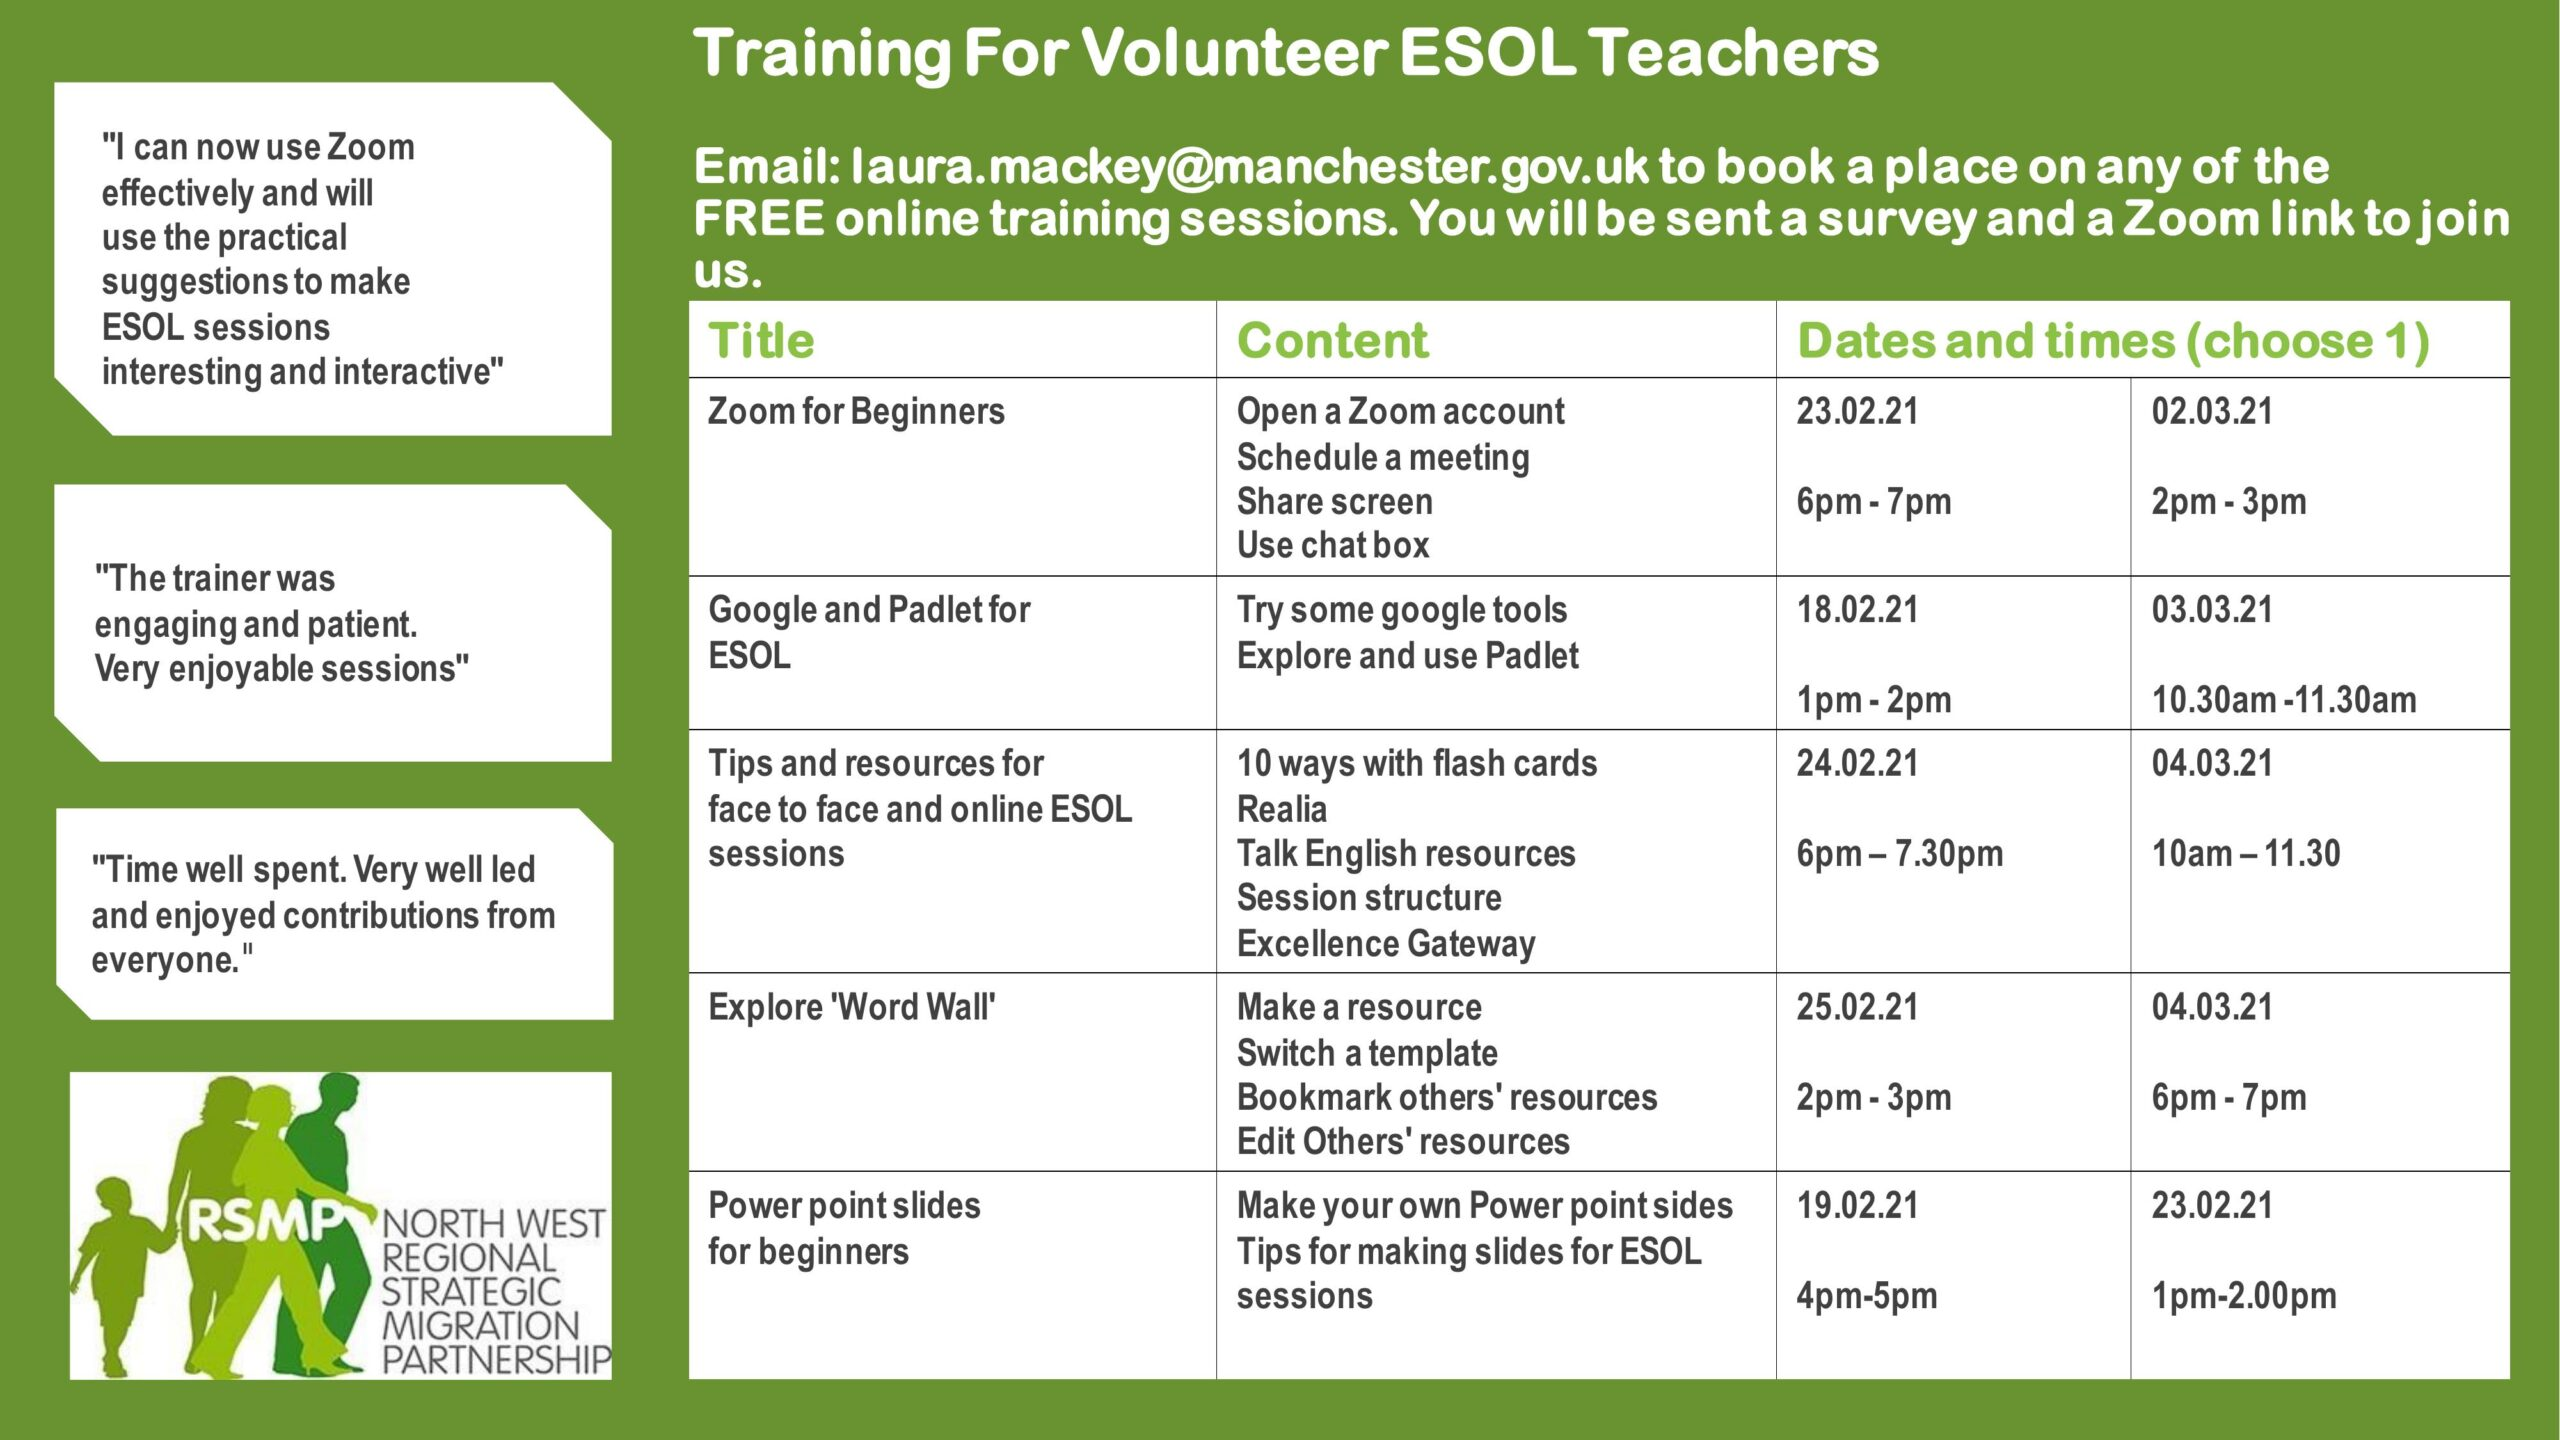 A list of free online training sessions for ESOL Volunteers in Feb and March 2021. Please register with laura.mackey@manchester.gov.uk